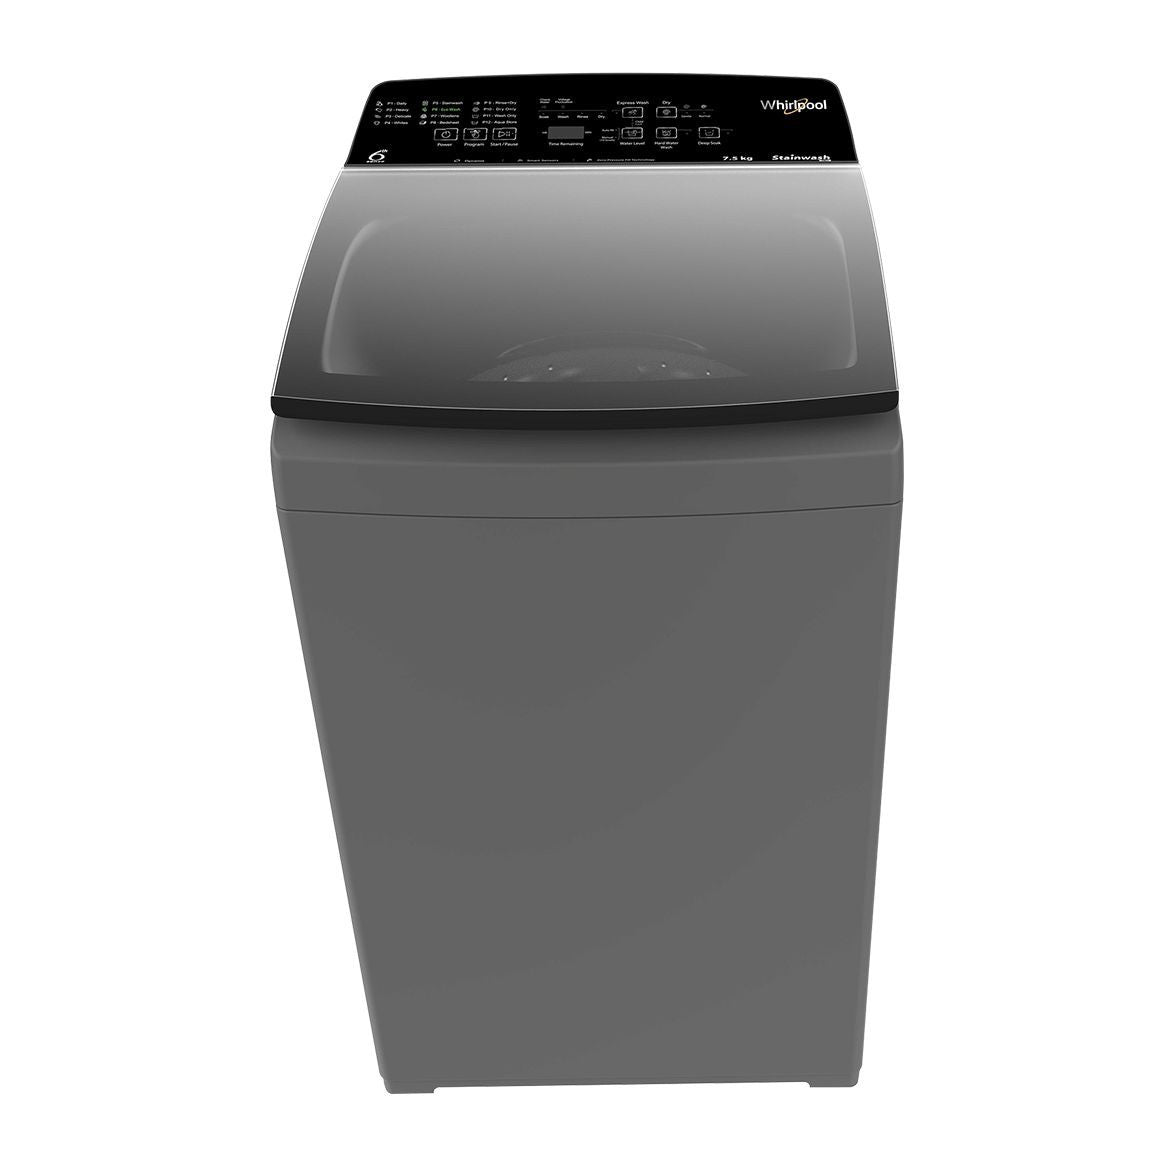 Whirlpool 6.5 Kg 4 Star Fully-Automatic Top Loading Washing Machine with In-Built Heater (STAINWASH PRO H 6.5, Shiny Grey)